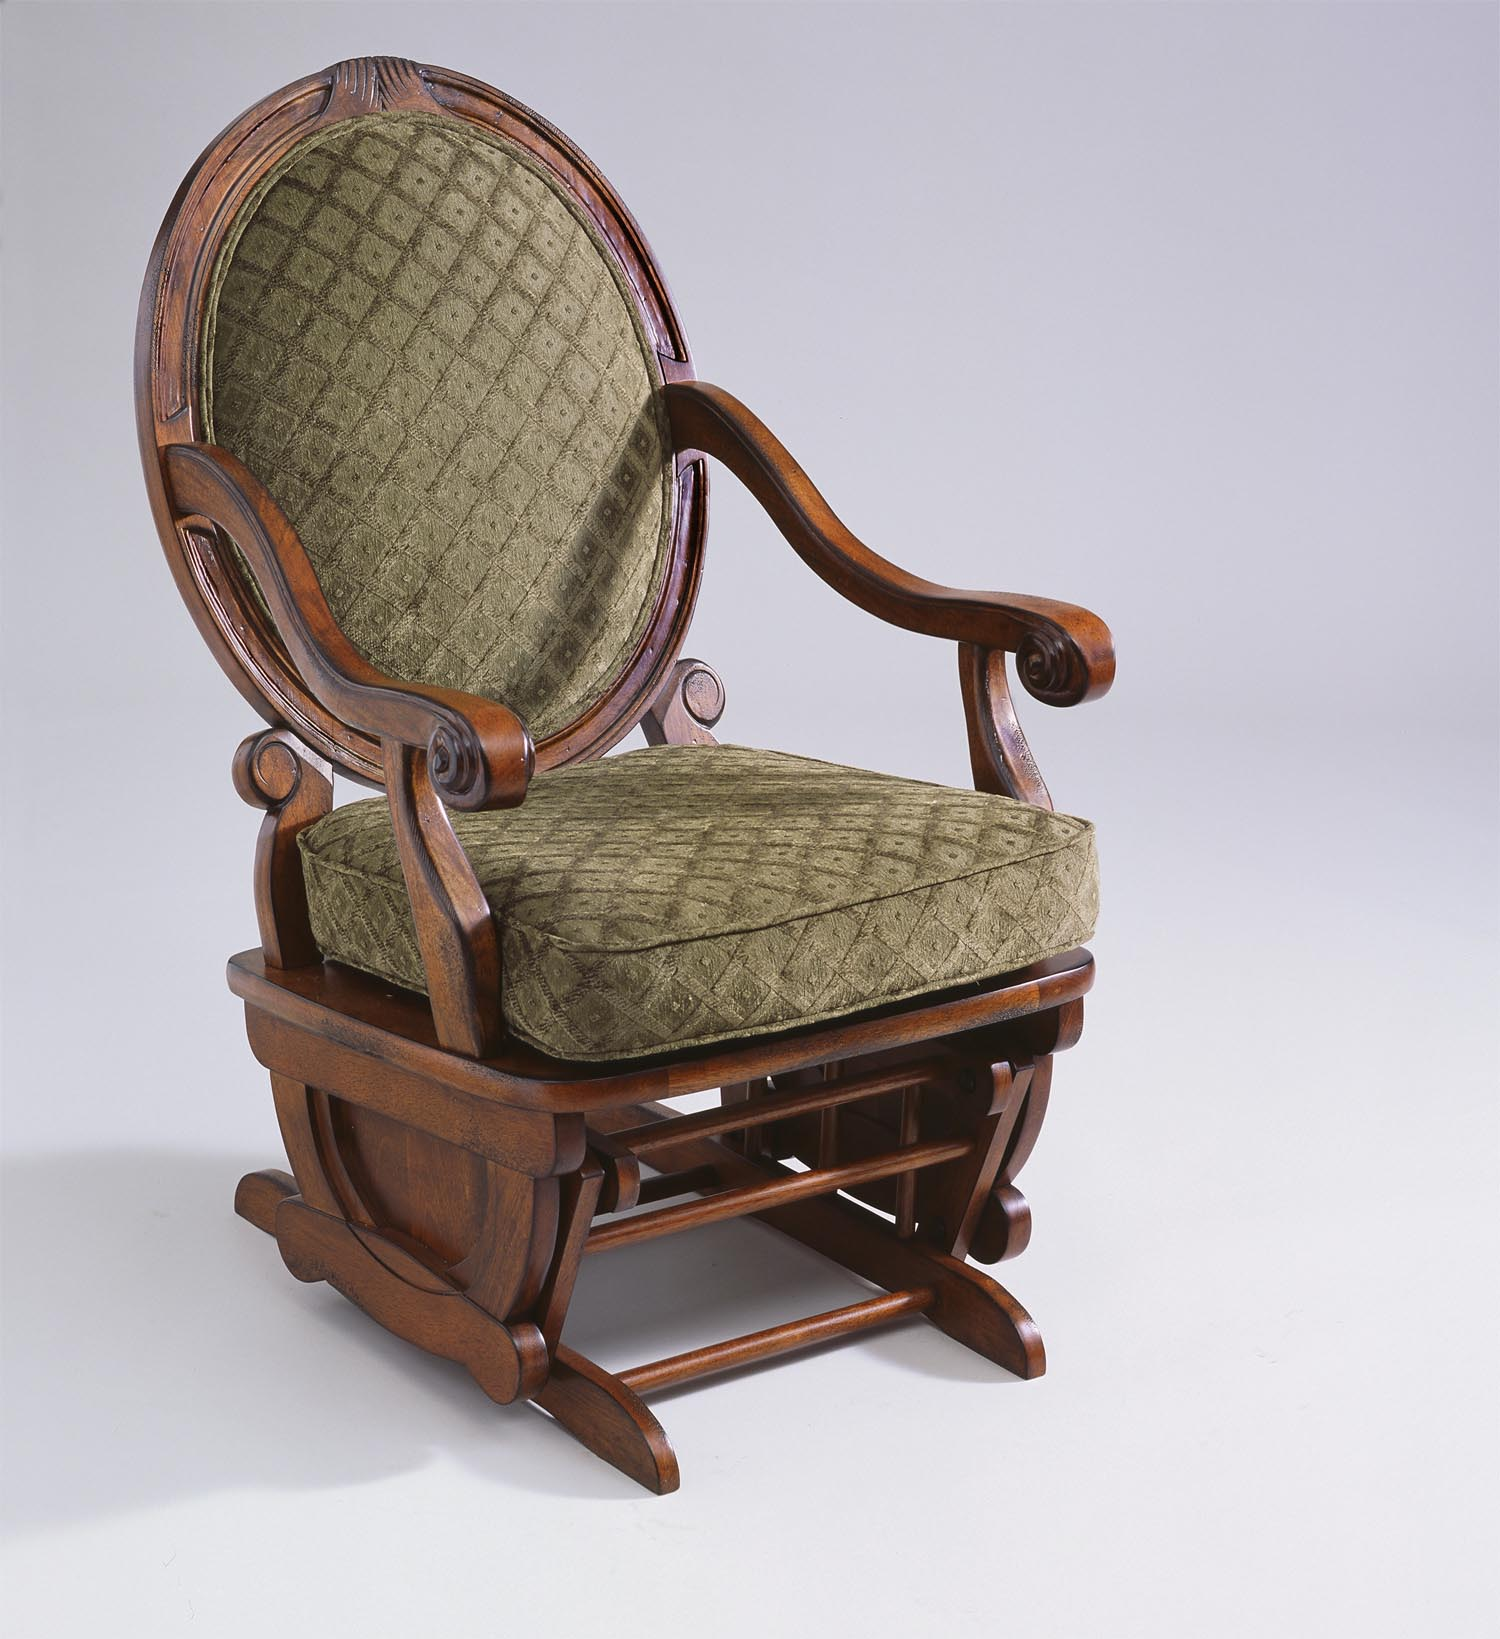 Gliding Rocking Chair Gliders And Accent Chairs Jasen 39s Fine Furniture Since 1951